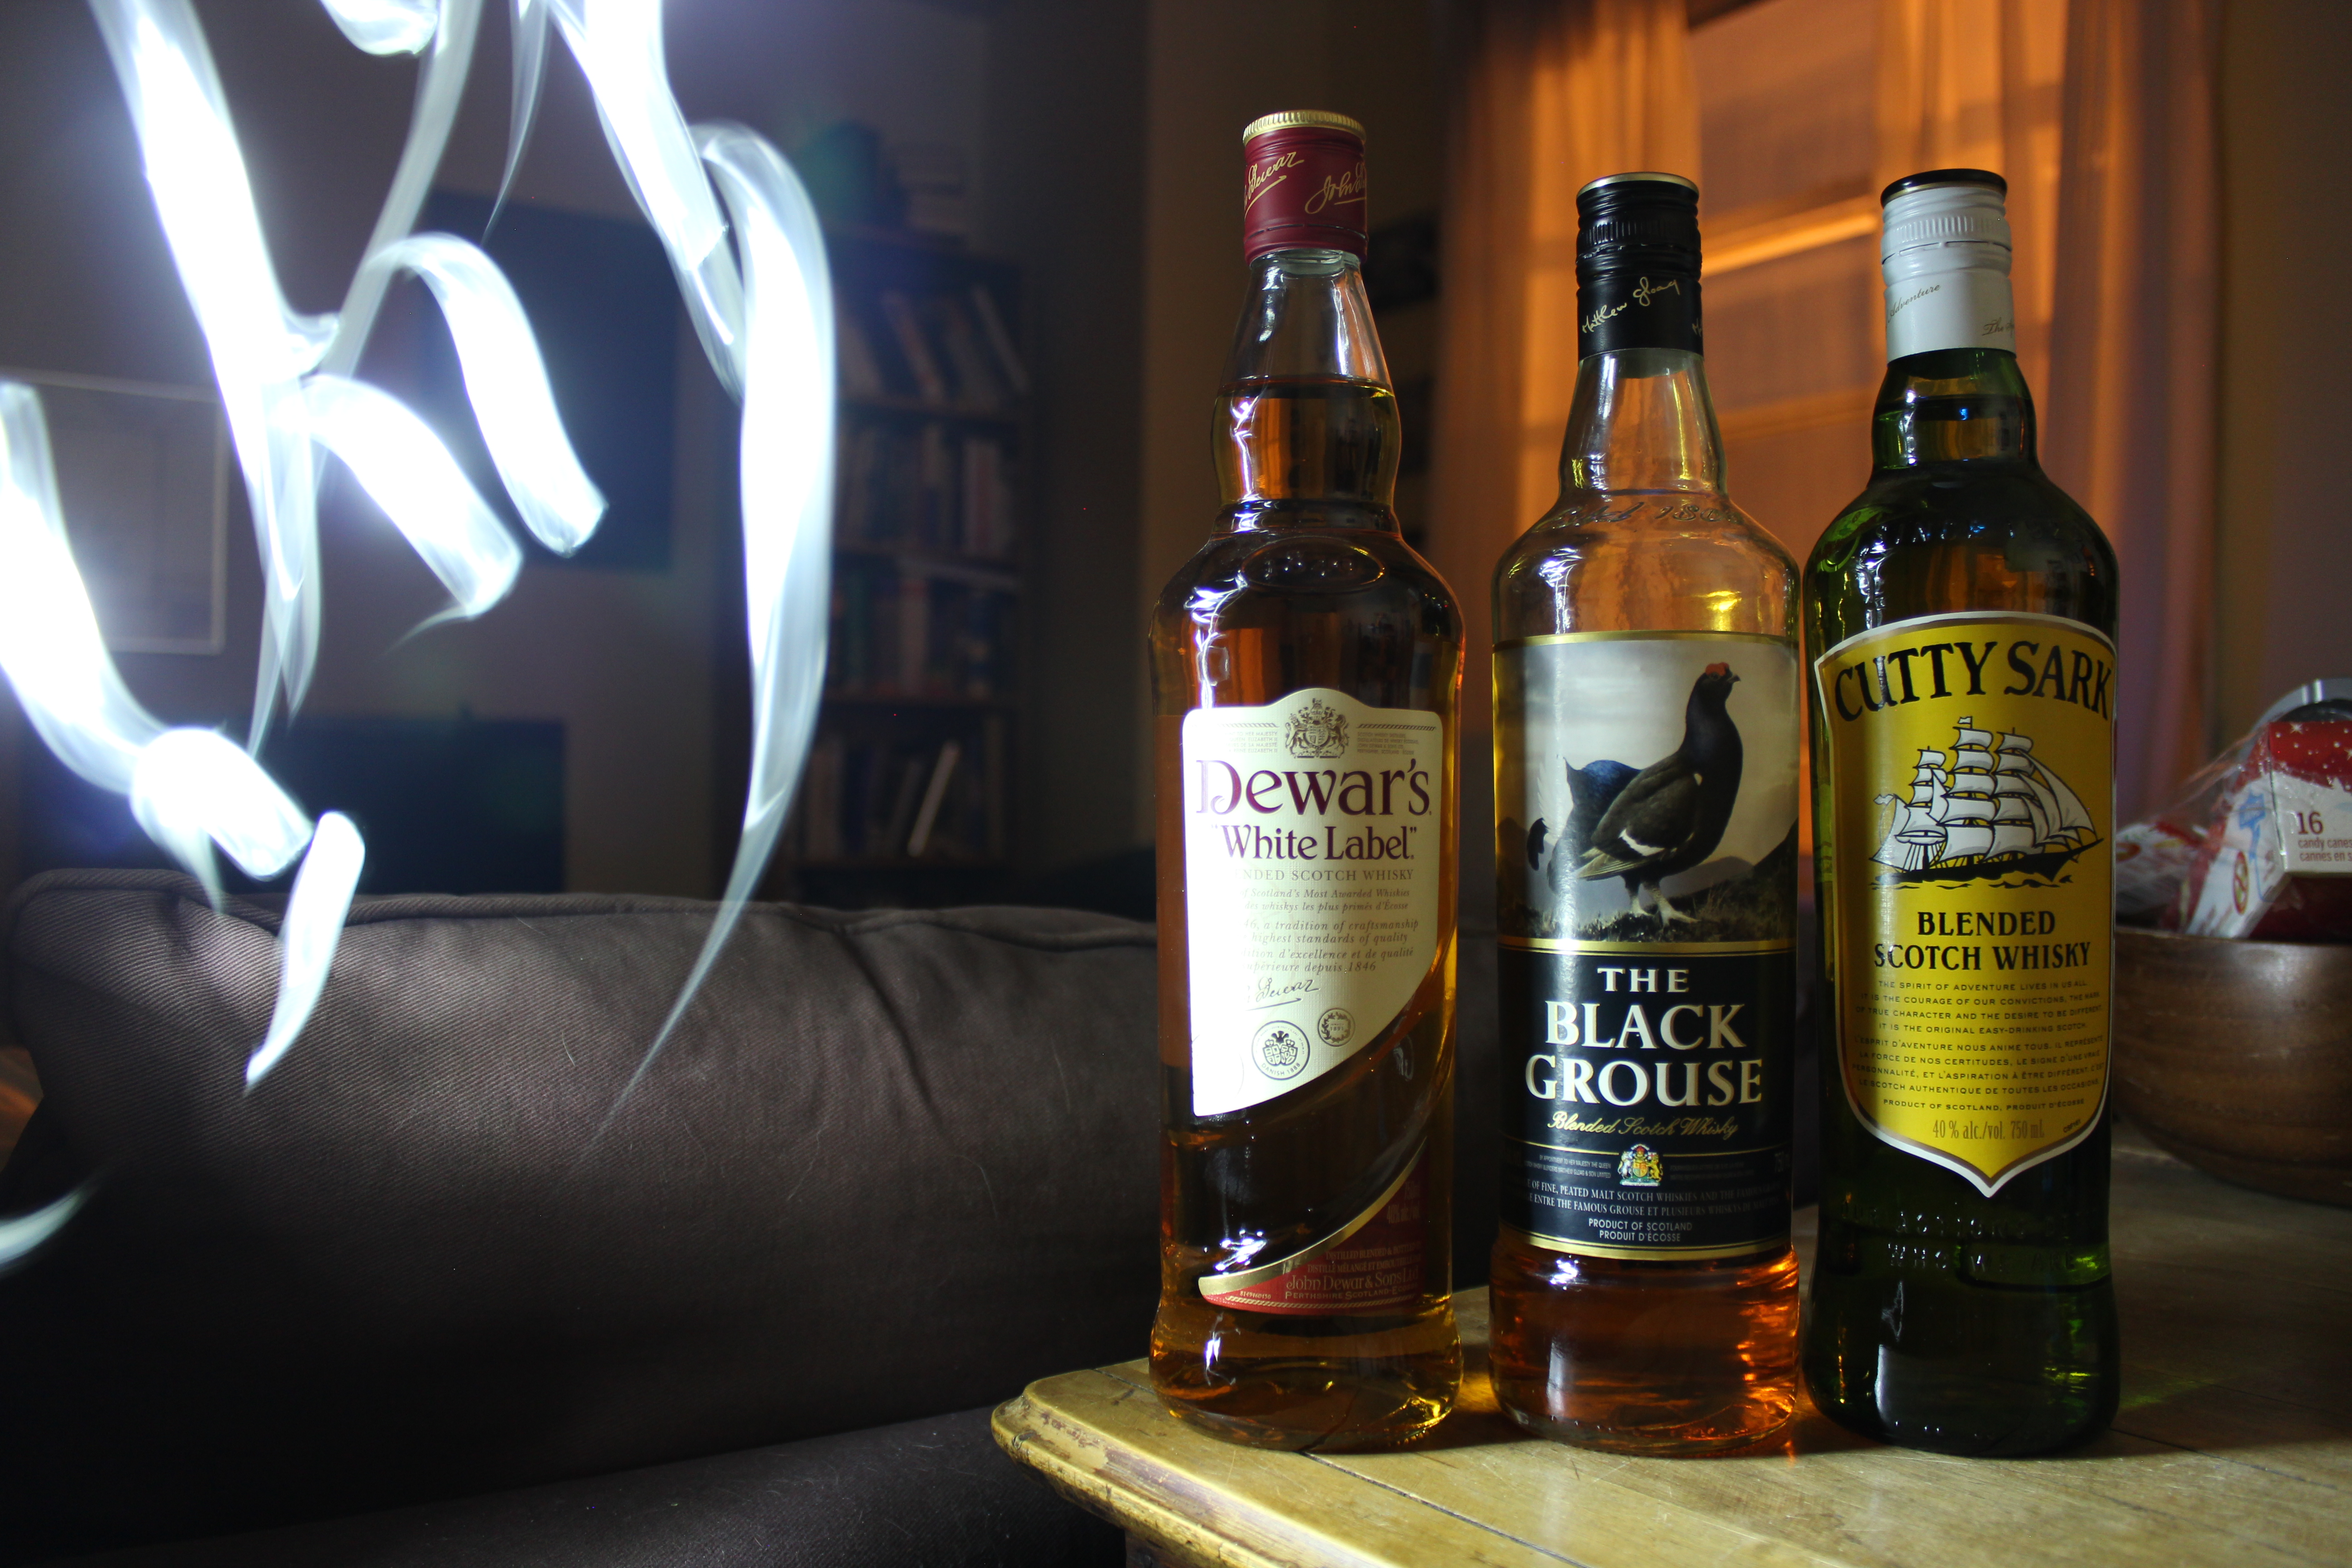 BlenderScotch Royale! Dewar's White Label v The Black Grouse v Cutty Sark with Dan, Ryan, Goran & Matt